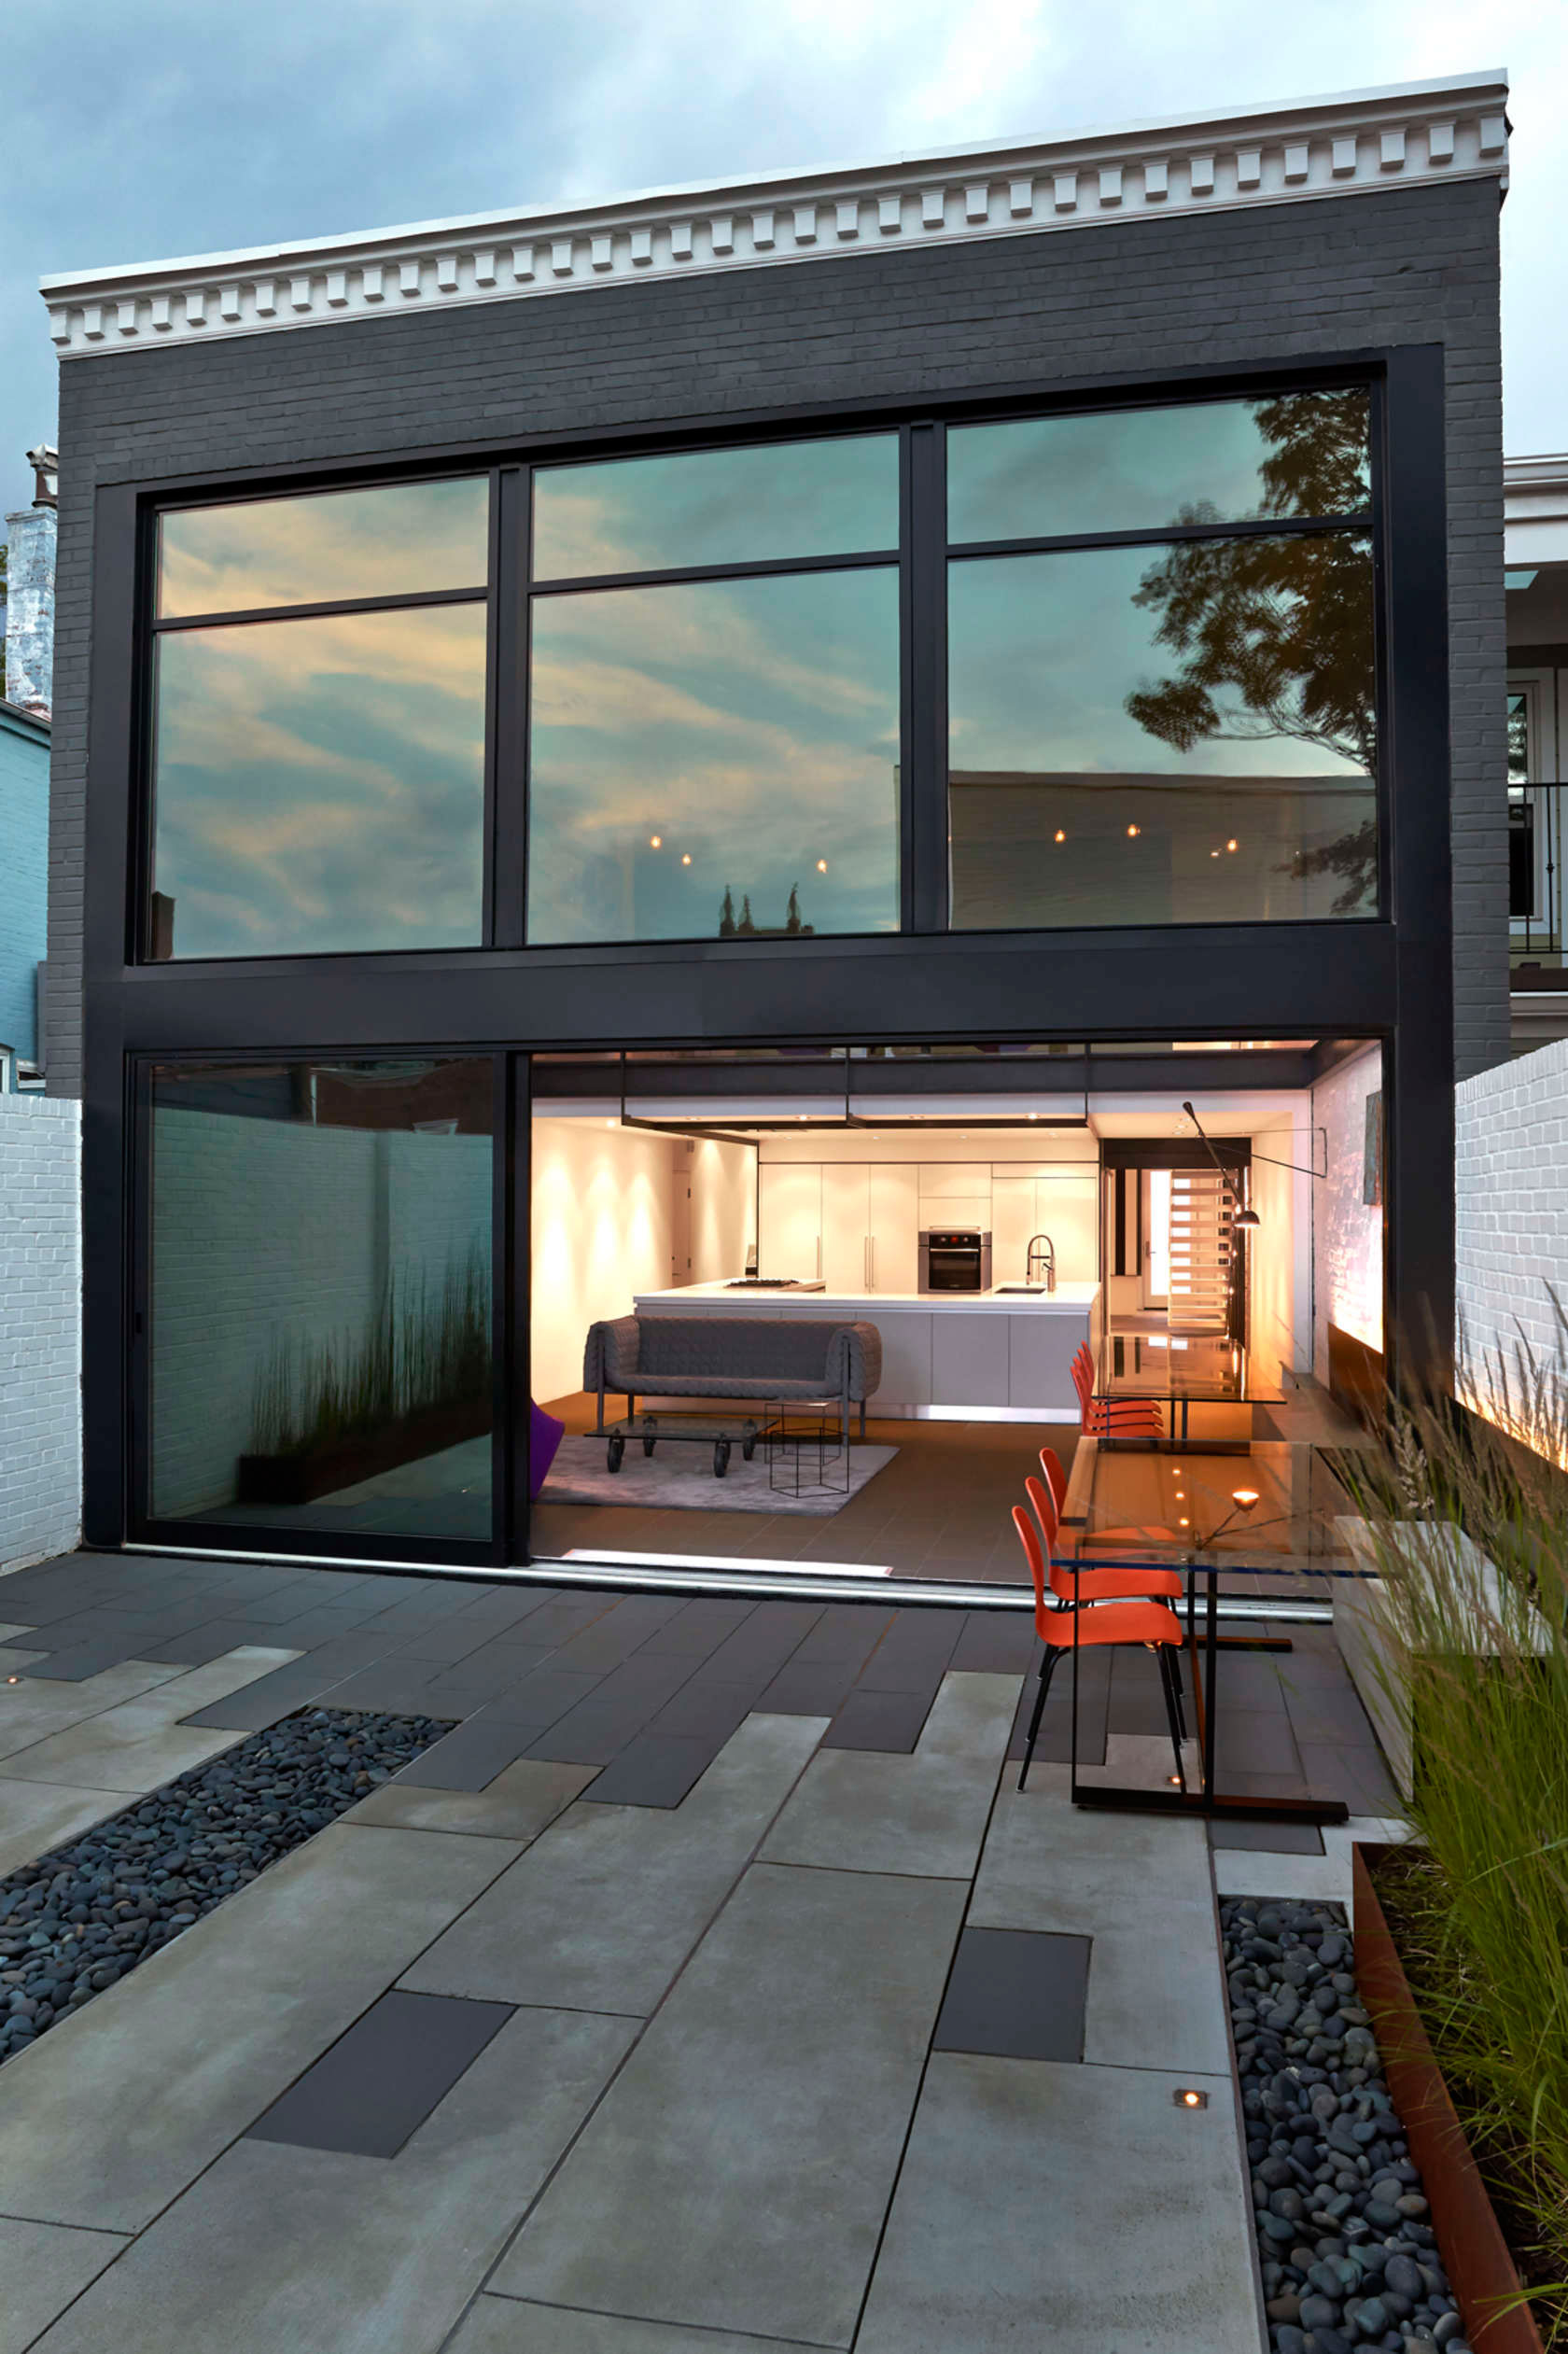 Salt and Pepper House in Washington, D.C. by KUBE Architecture-24